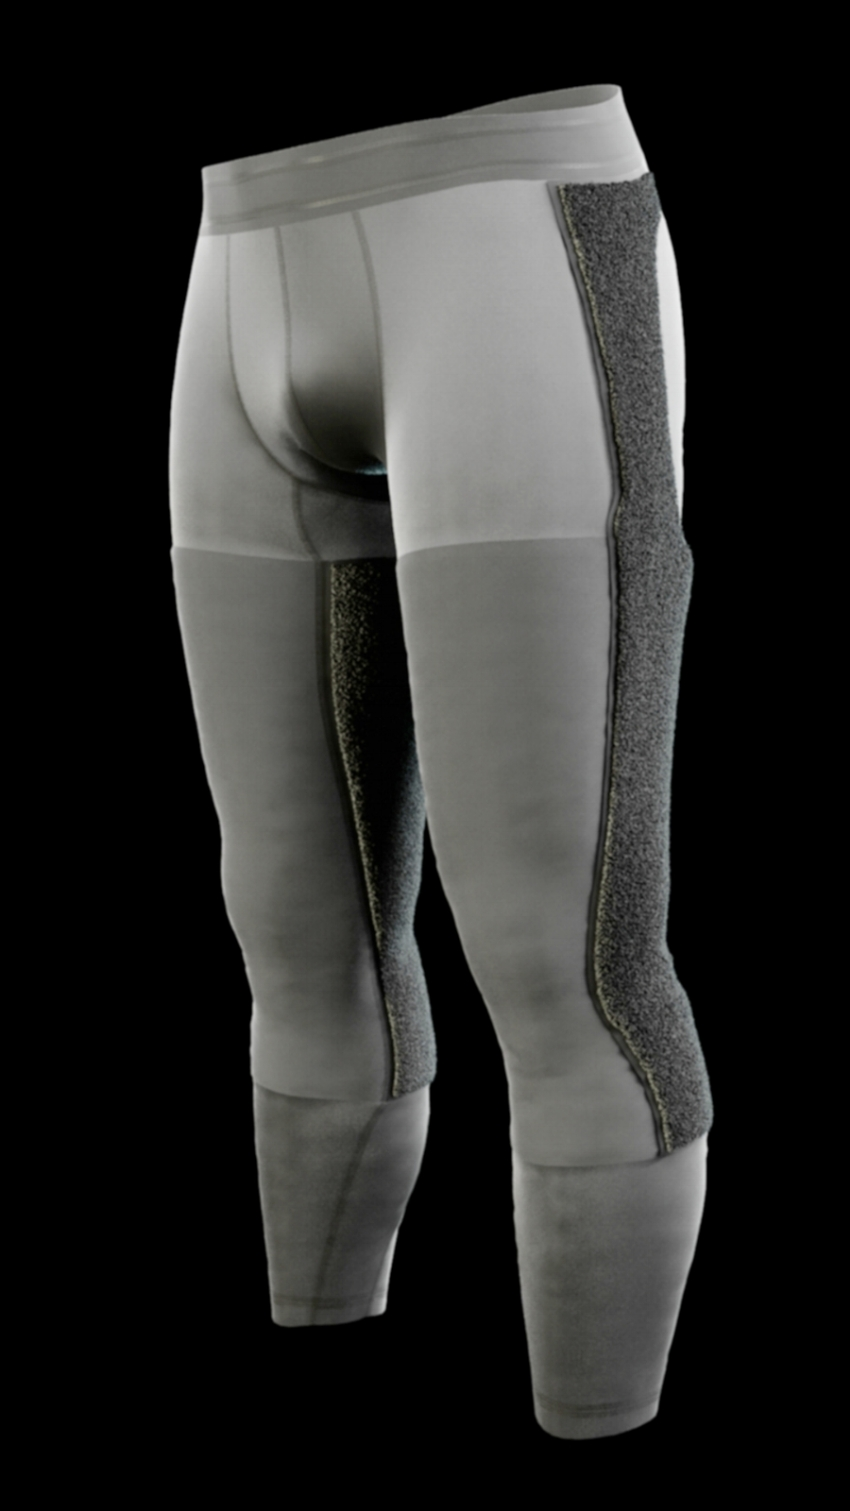 Baselayer Compression Tights with Platform Design that allows you to stick any application, either functional and supportive or aesthetic, on top.